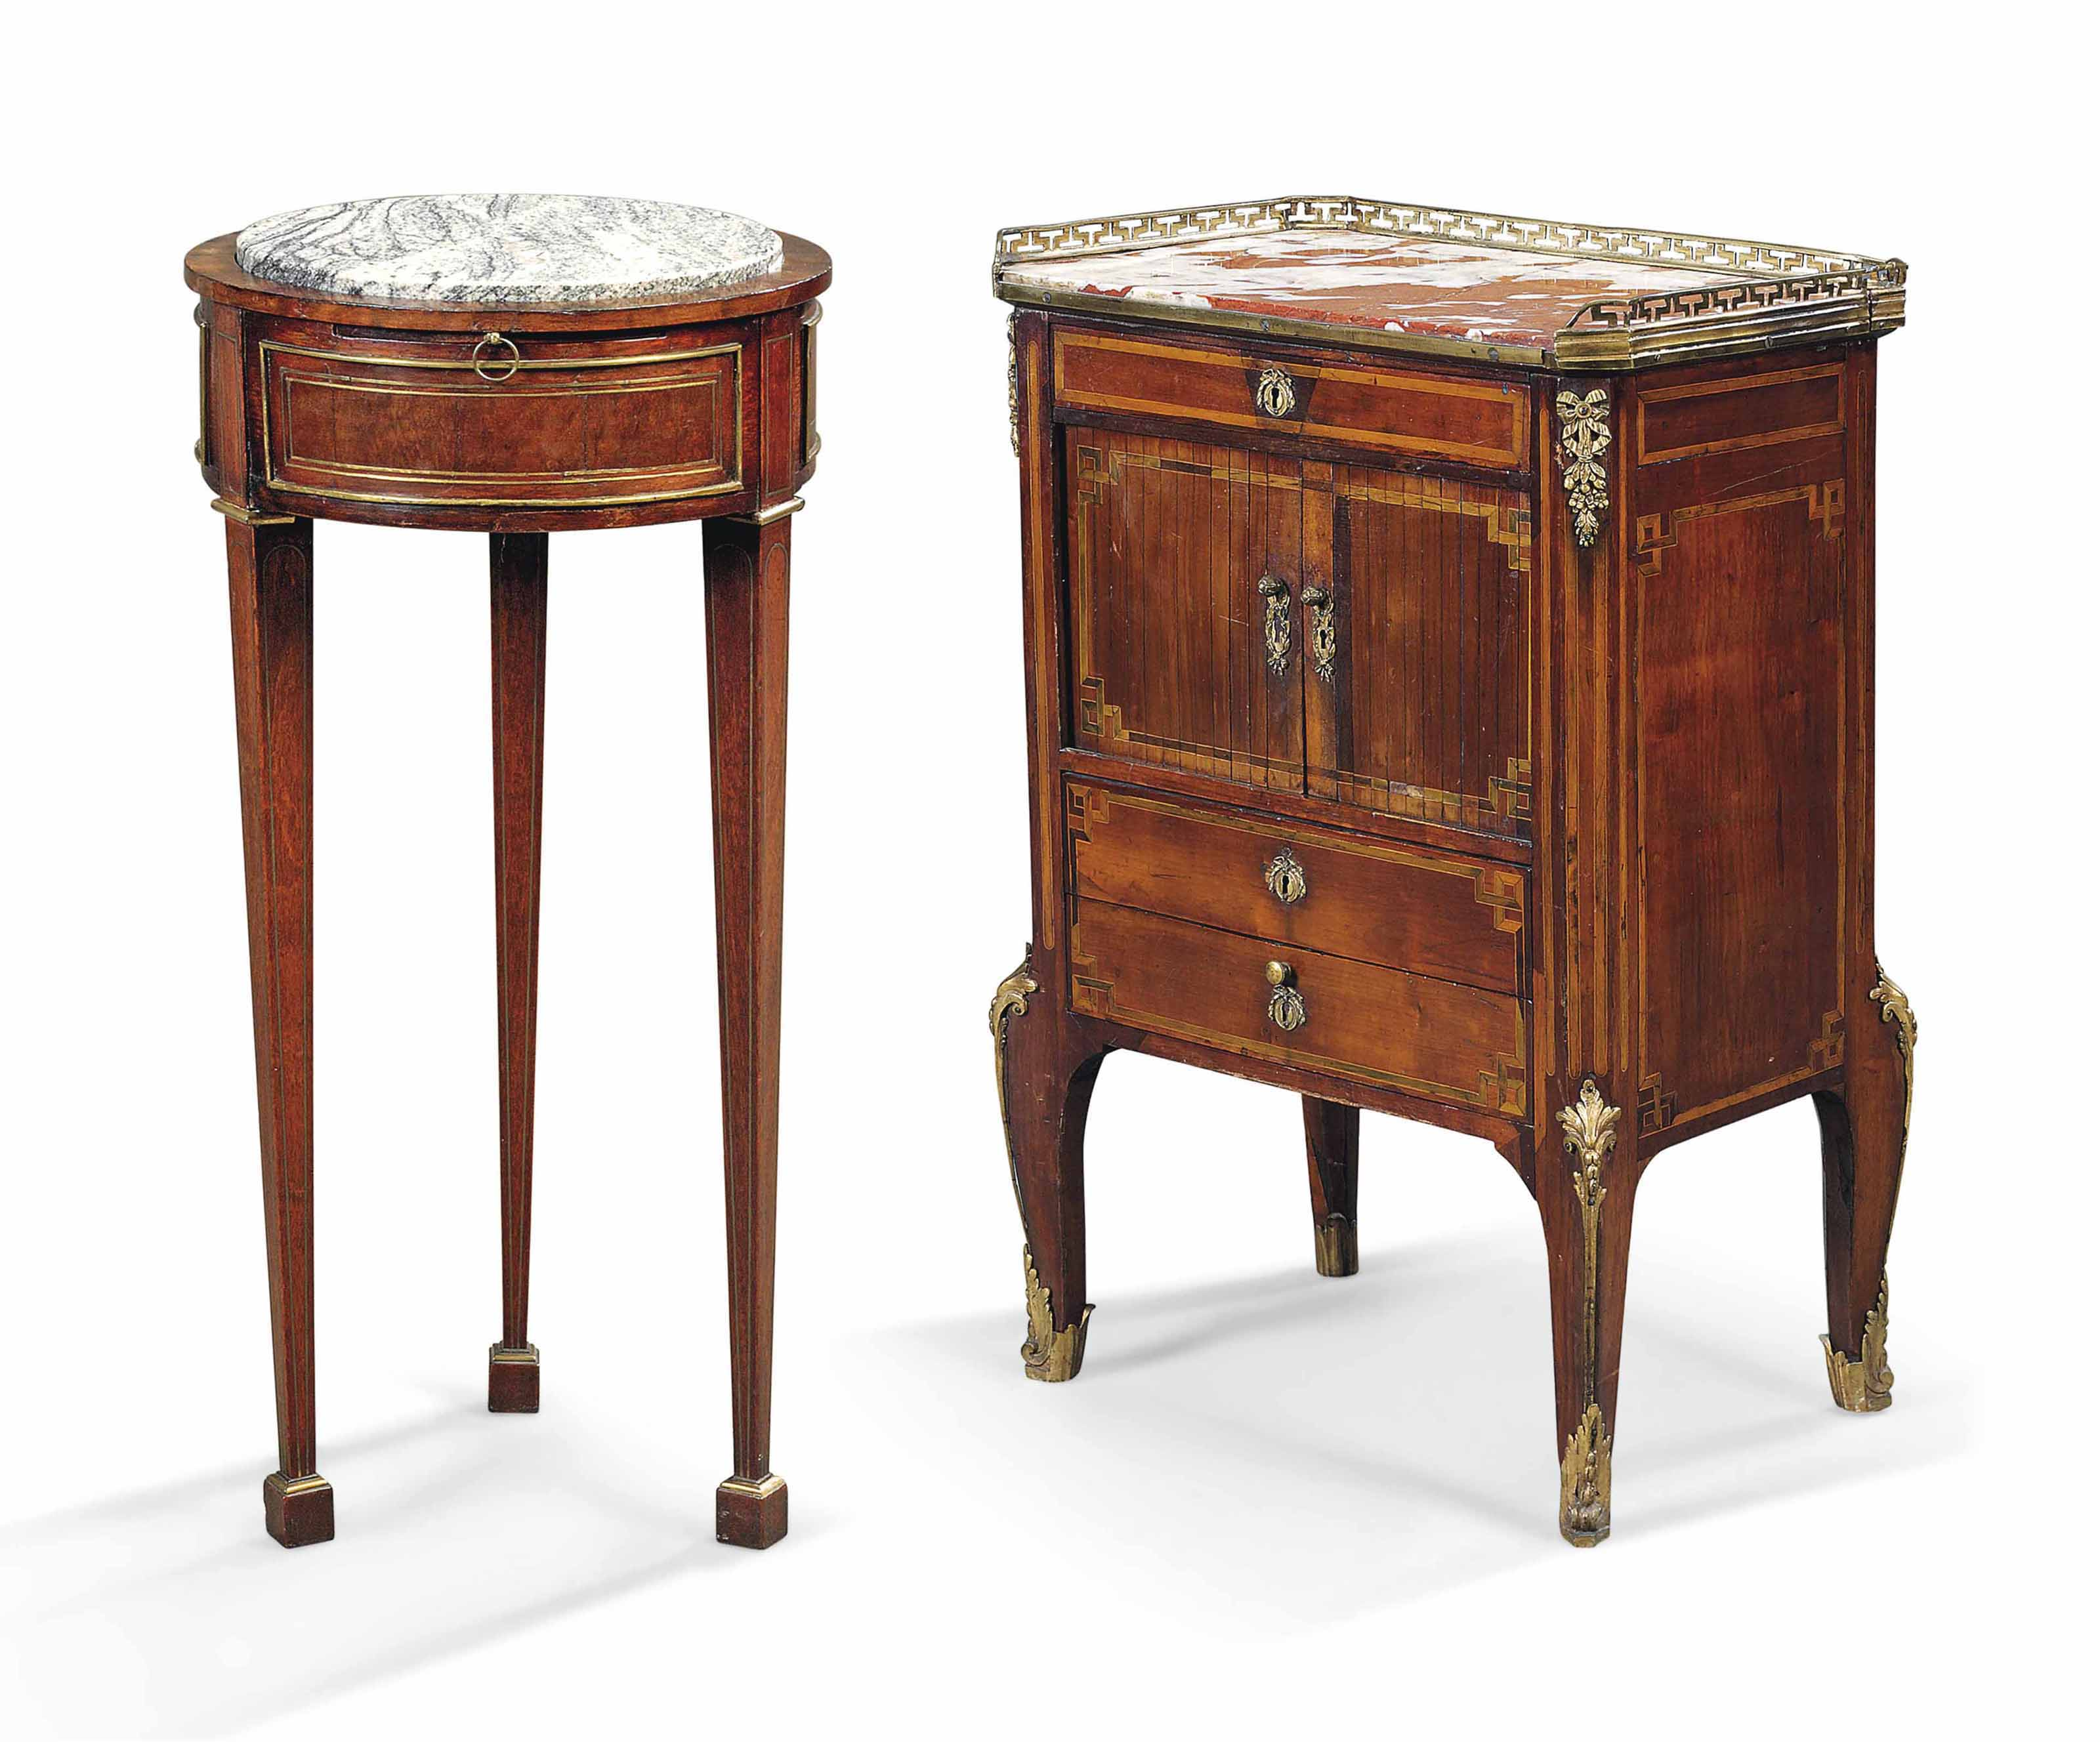 A LOUIS XV ORMOLU-MOUNTED FRUITWOOD AND CROSSBANDED COMMODE